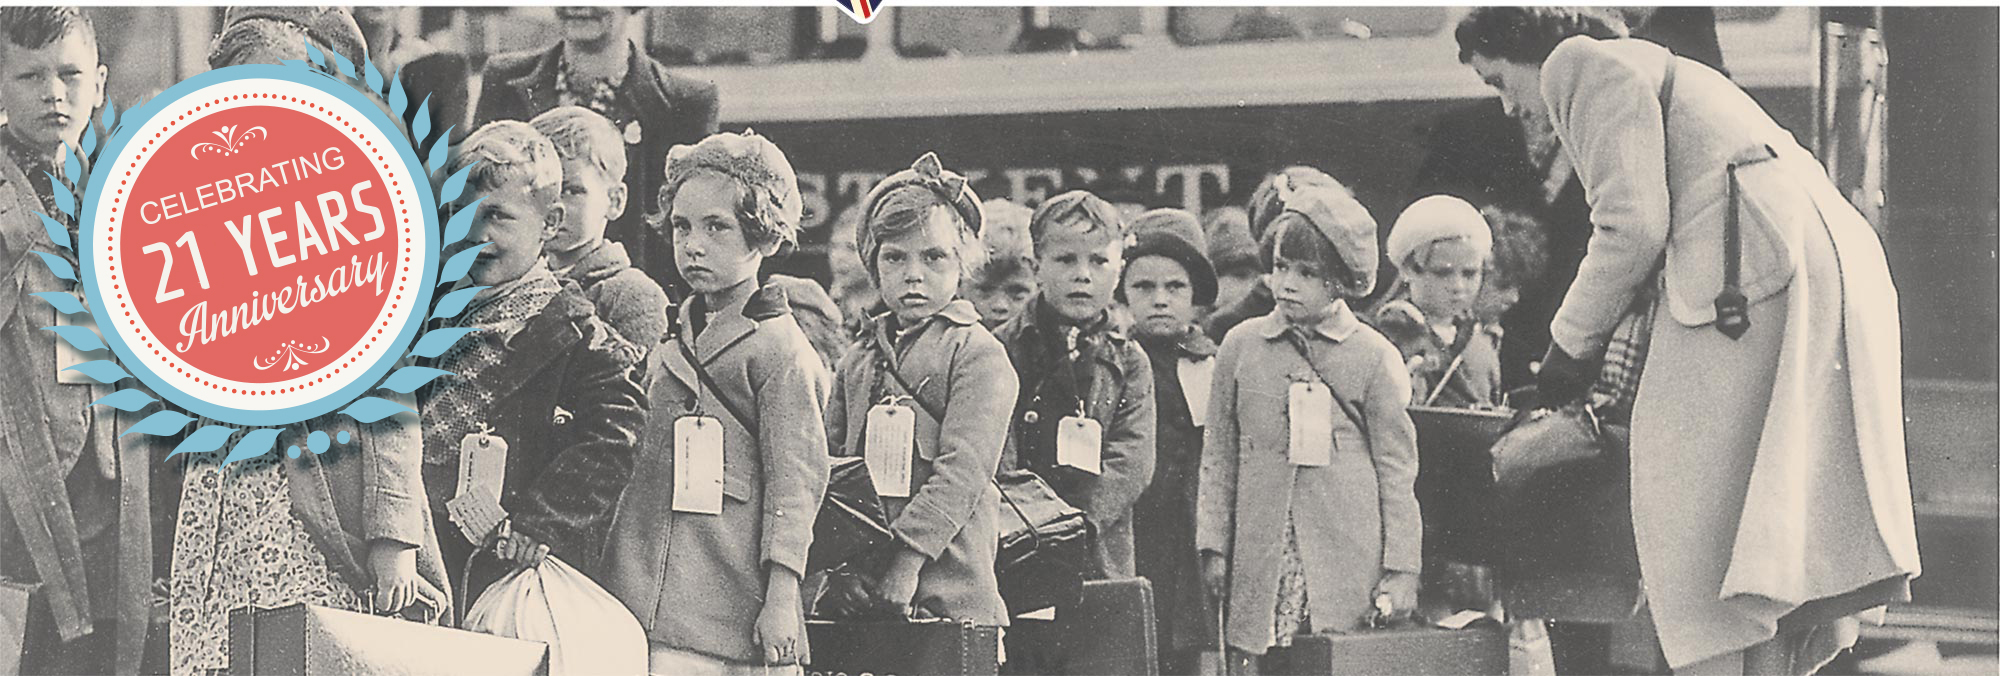 the great evacuation of children during the second world war, ww2